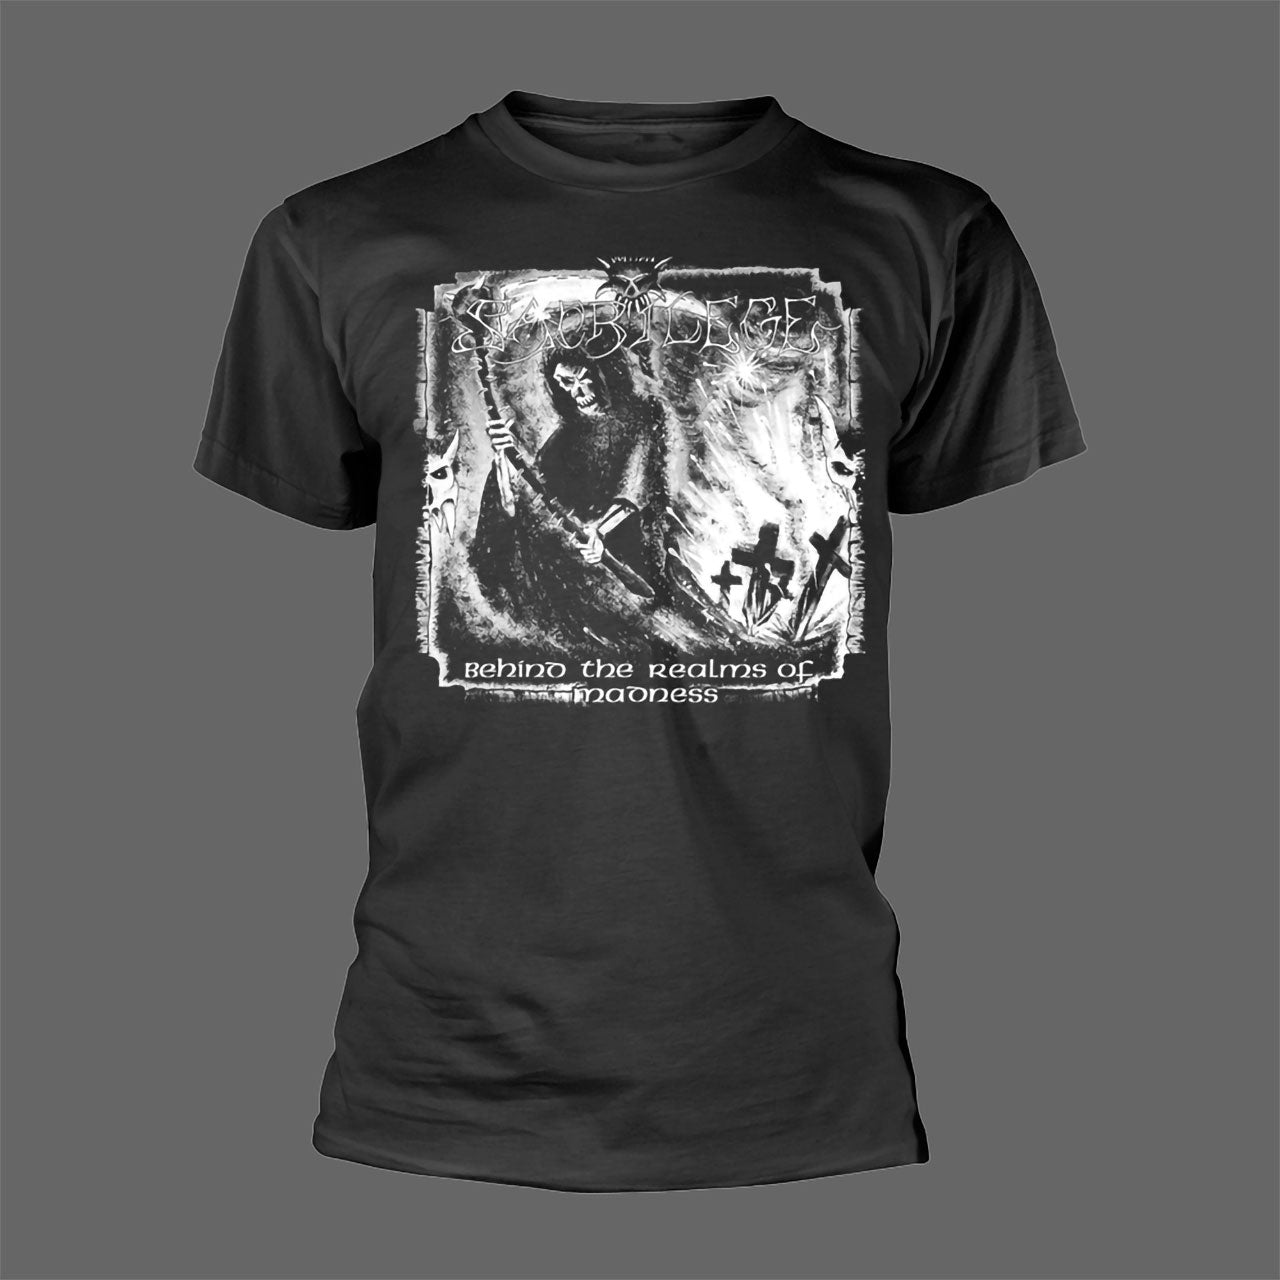 Sacrilege - Behind the Realms of Madness (T-Shirt - Released: 26 February 2021)